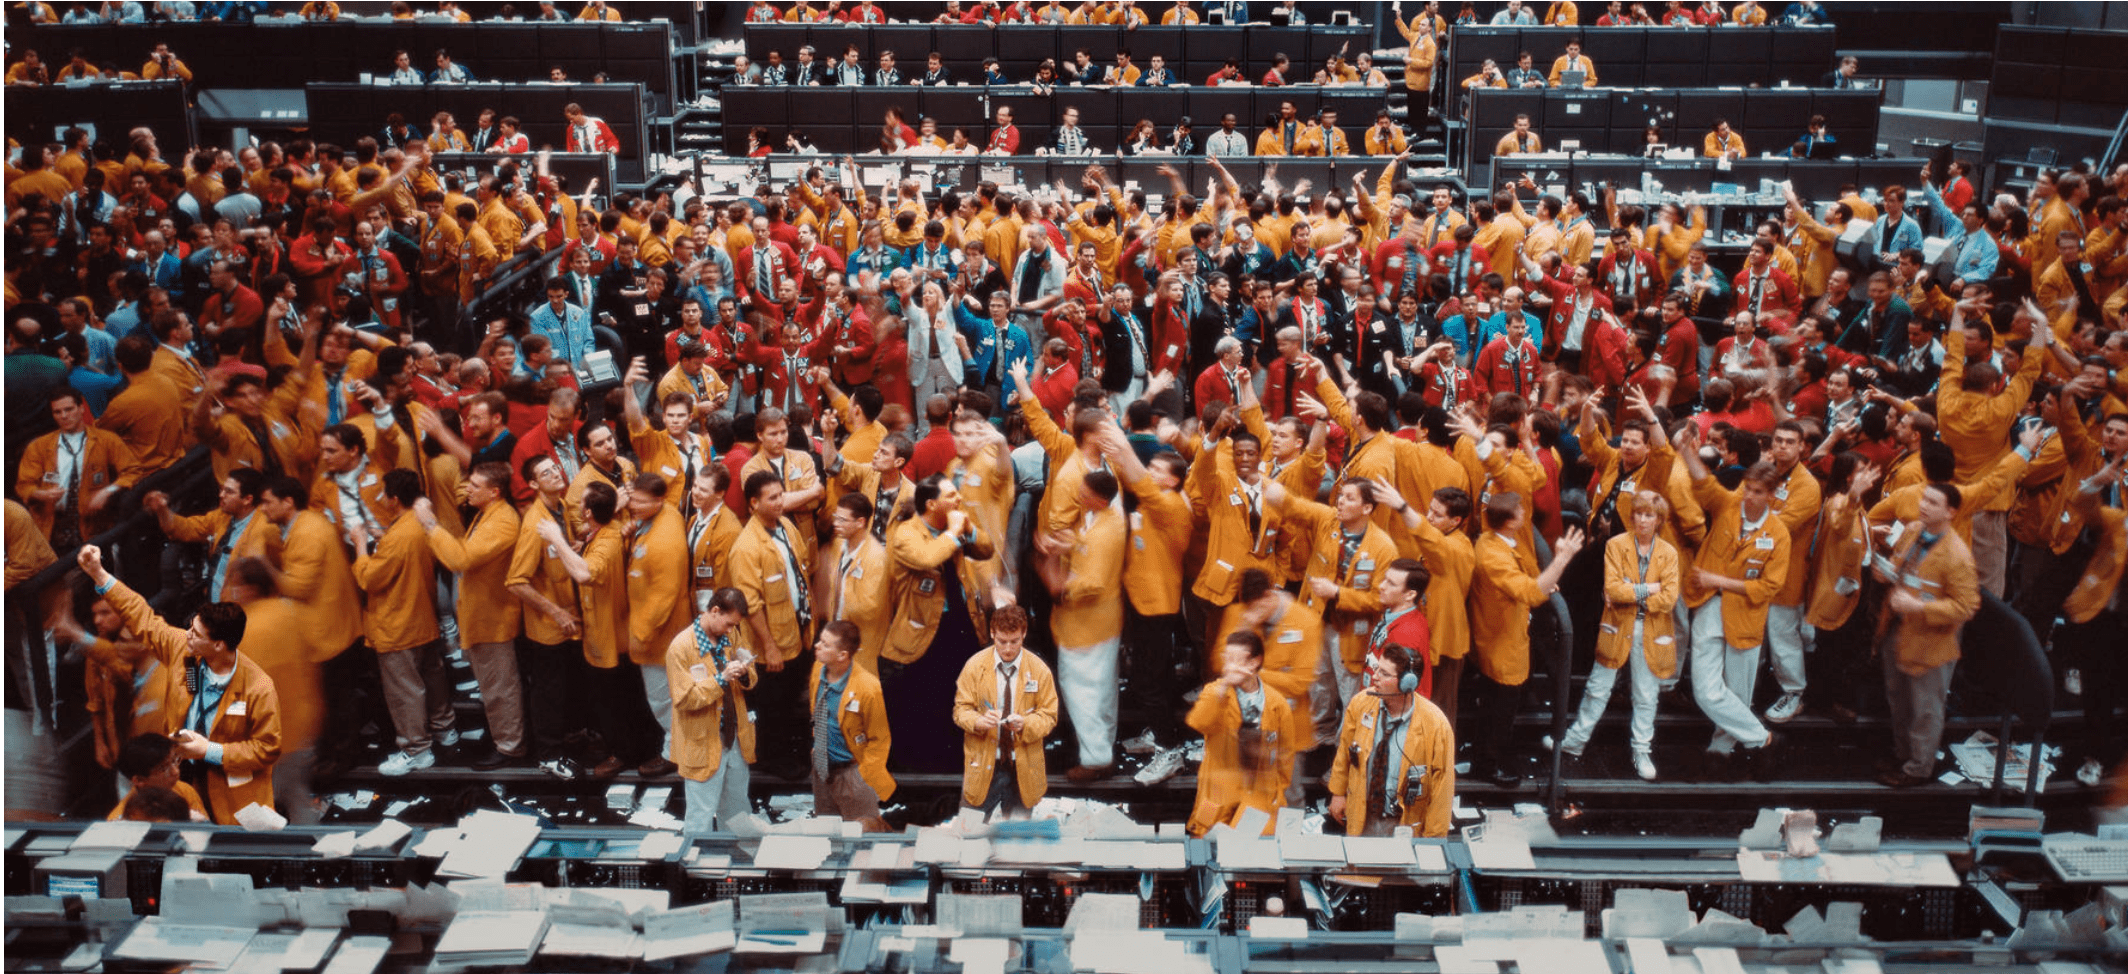 Andreas Gursky: Stock Exchanges